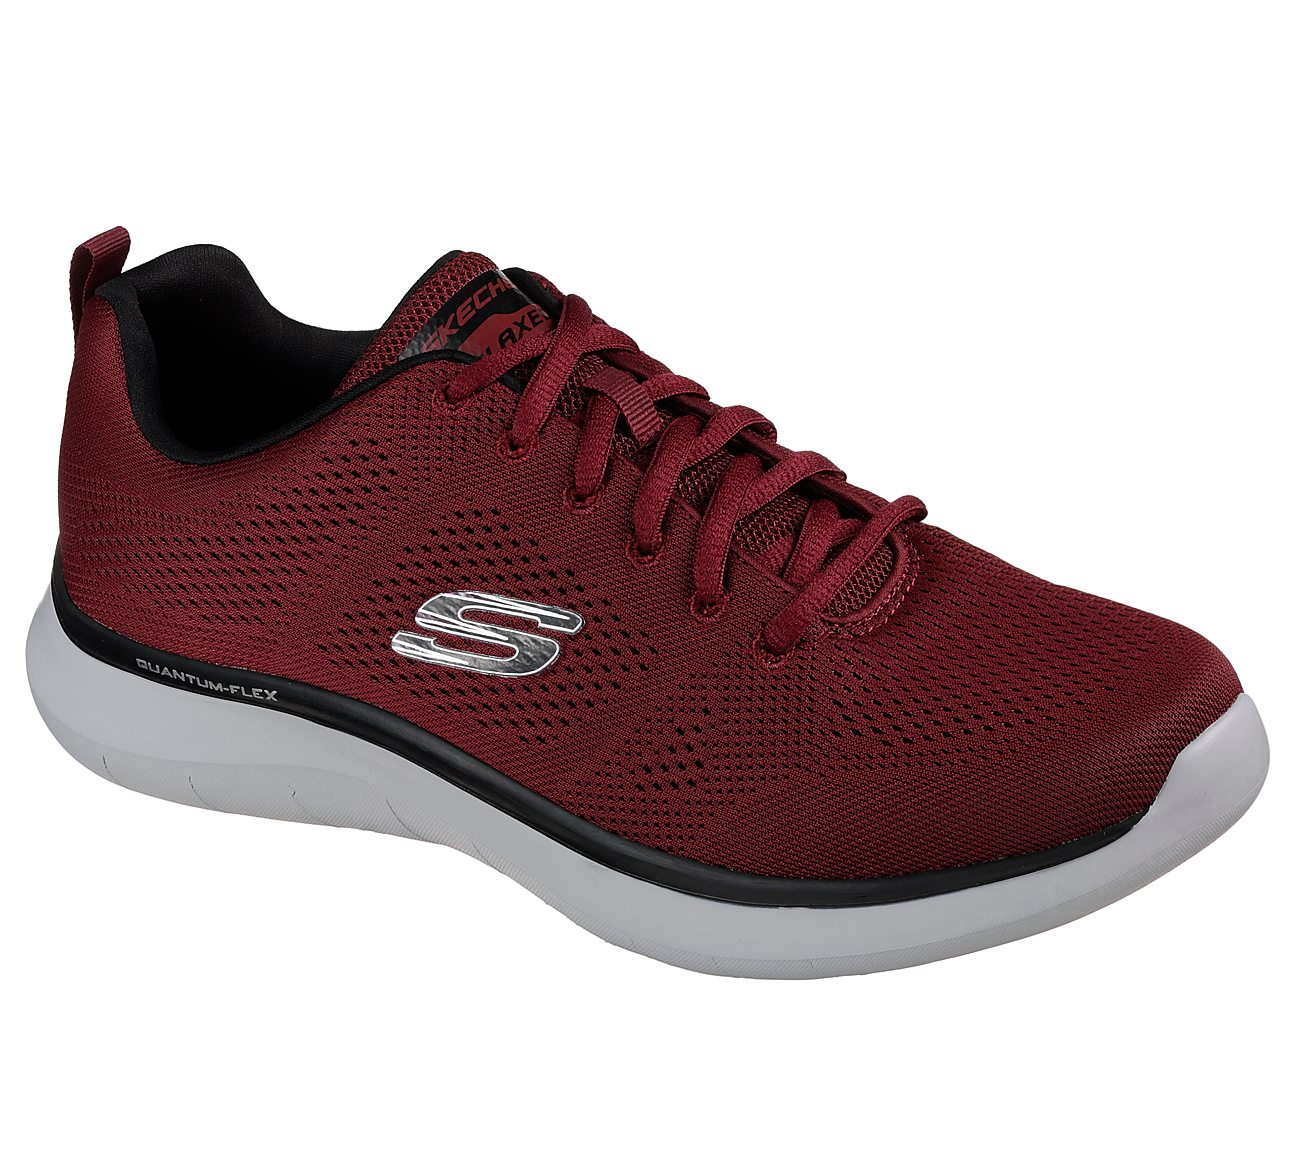 Buy Skechers Relaxed Fit Quantum Flex Rood Relaxed Fit